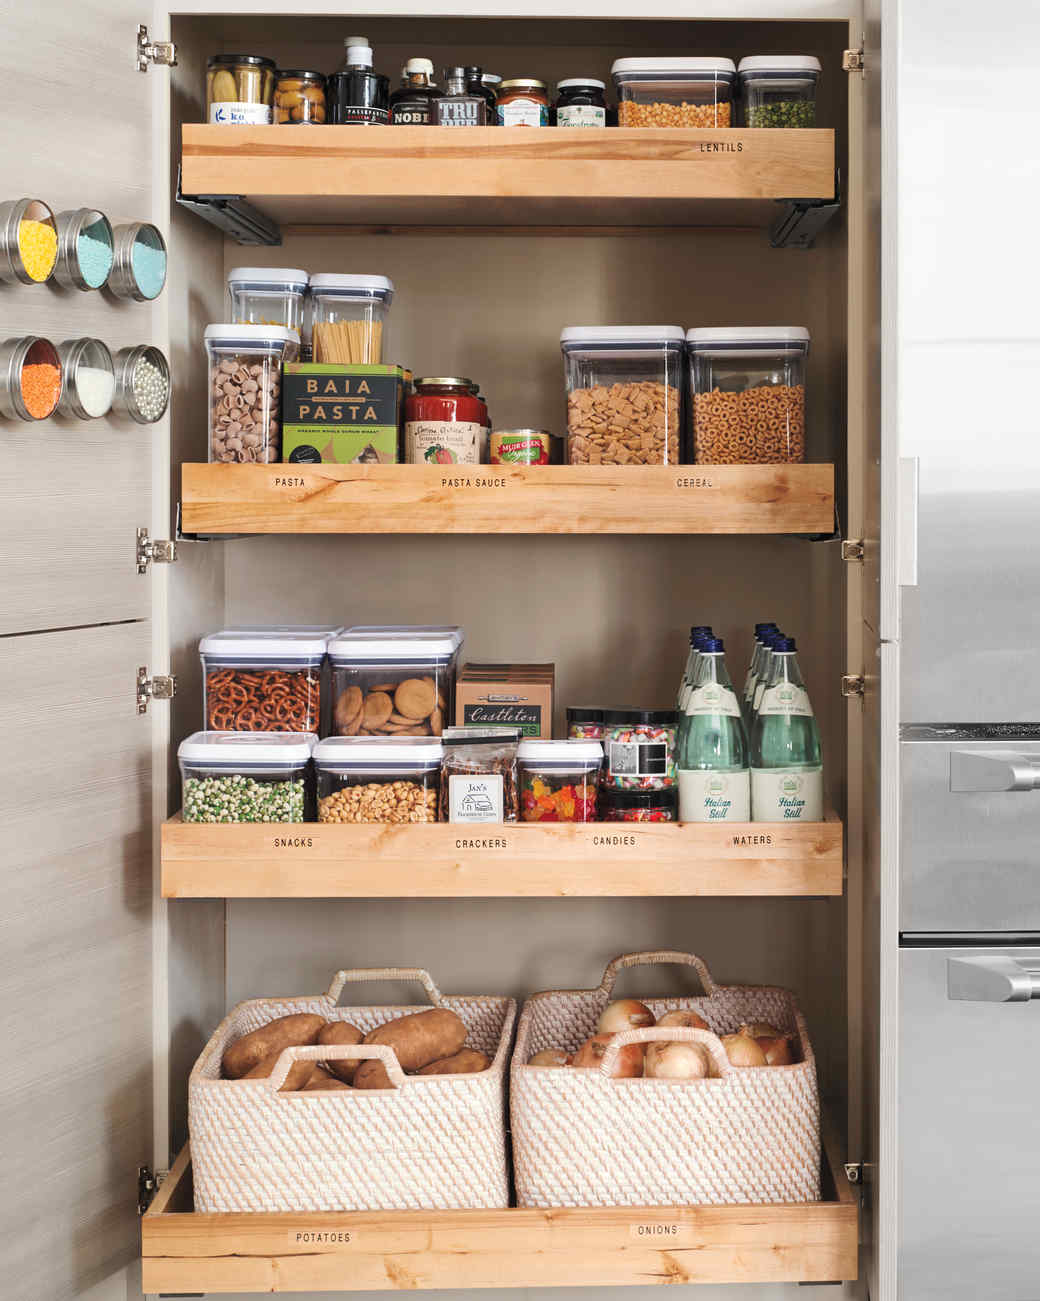 Find some storage pantry shelving for your kitchen